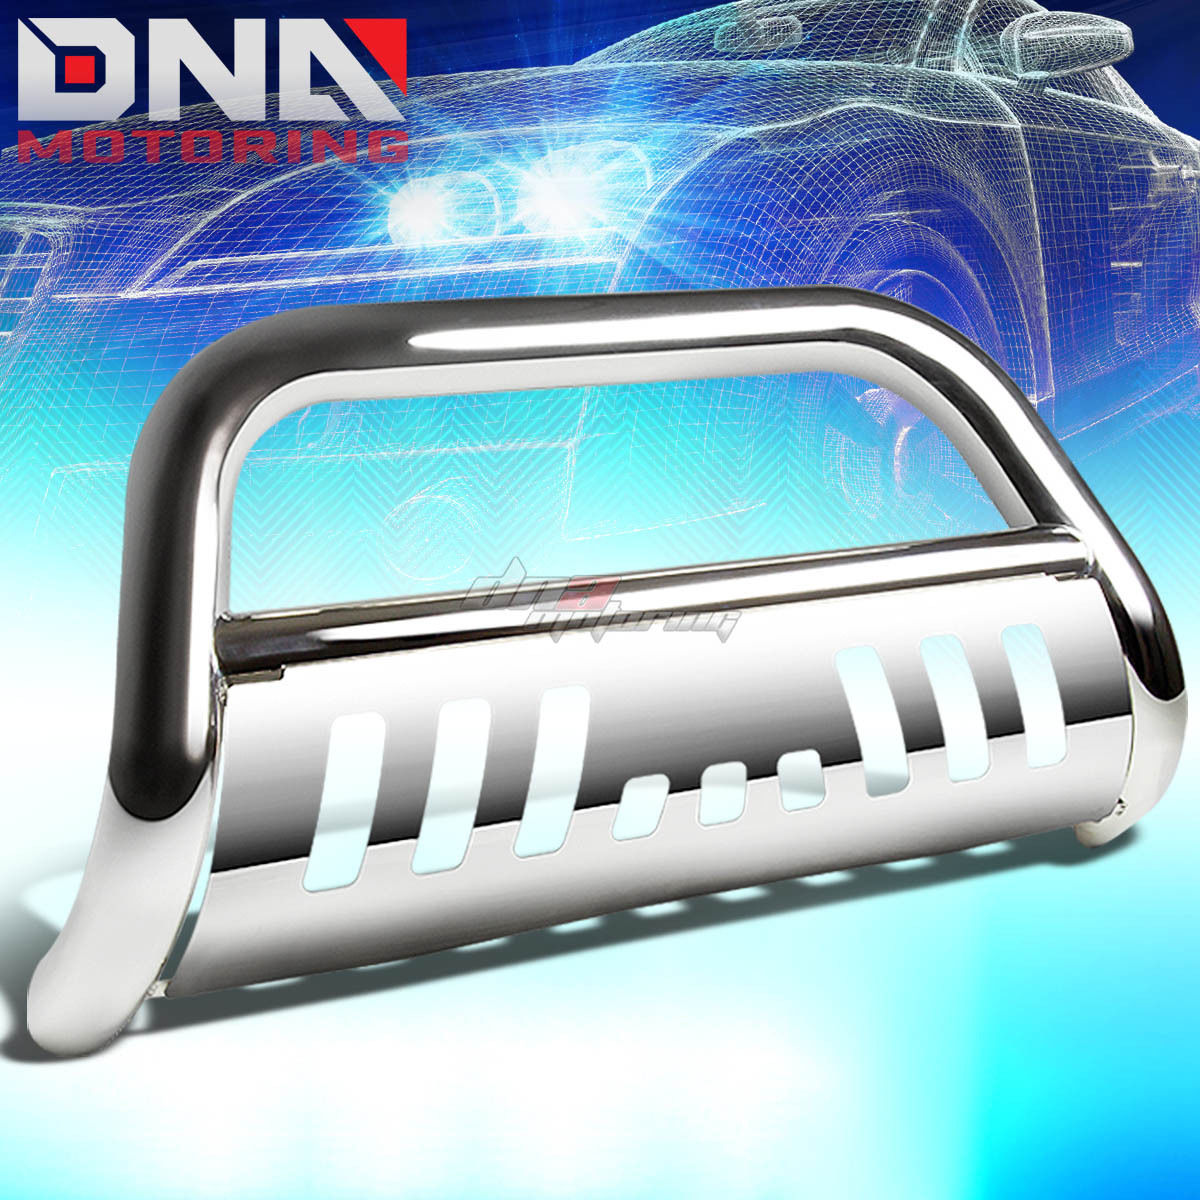 グリル 11-16 DURANGO / GRAND CHEROKEEステンレススチールクロームブルドリルグリルガード FOR 11-16 DURANGO/GRAND CHEROKEE STAINLESS STEEL CHROME BULL BAR GRILL GUARD